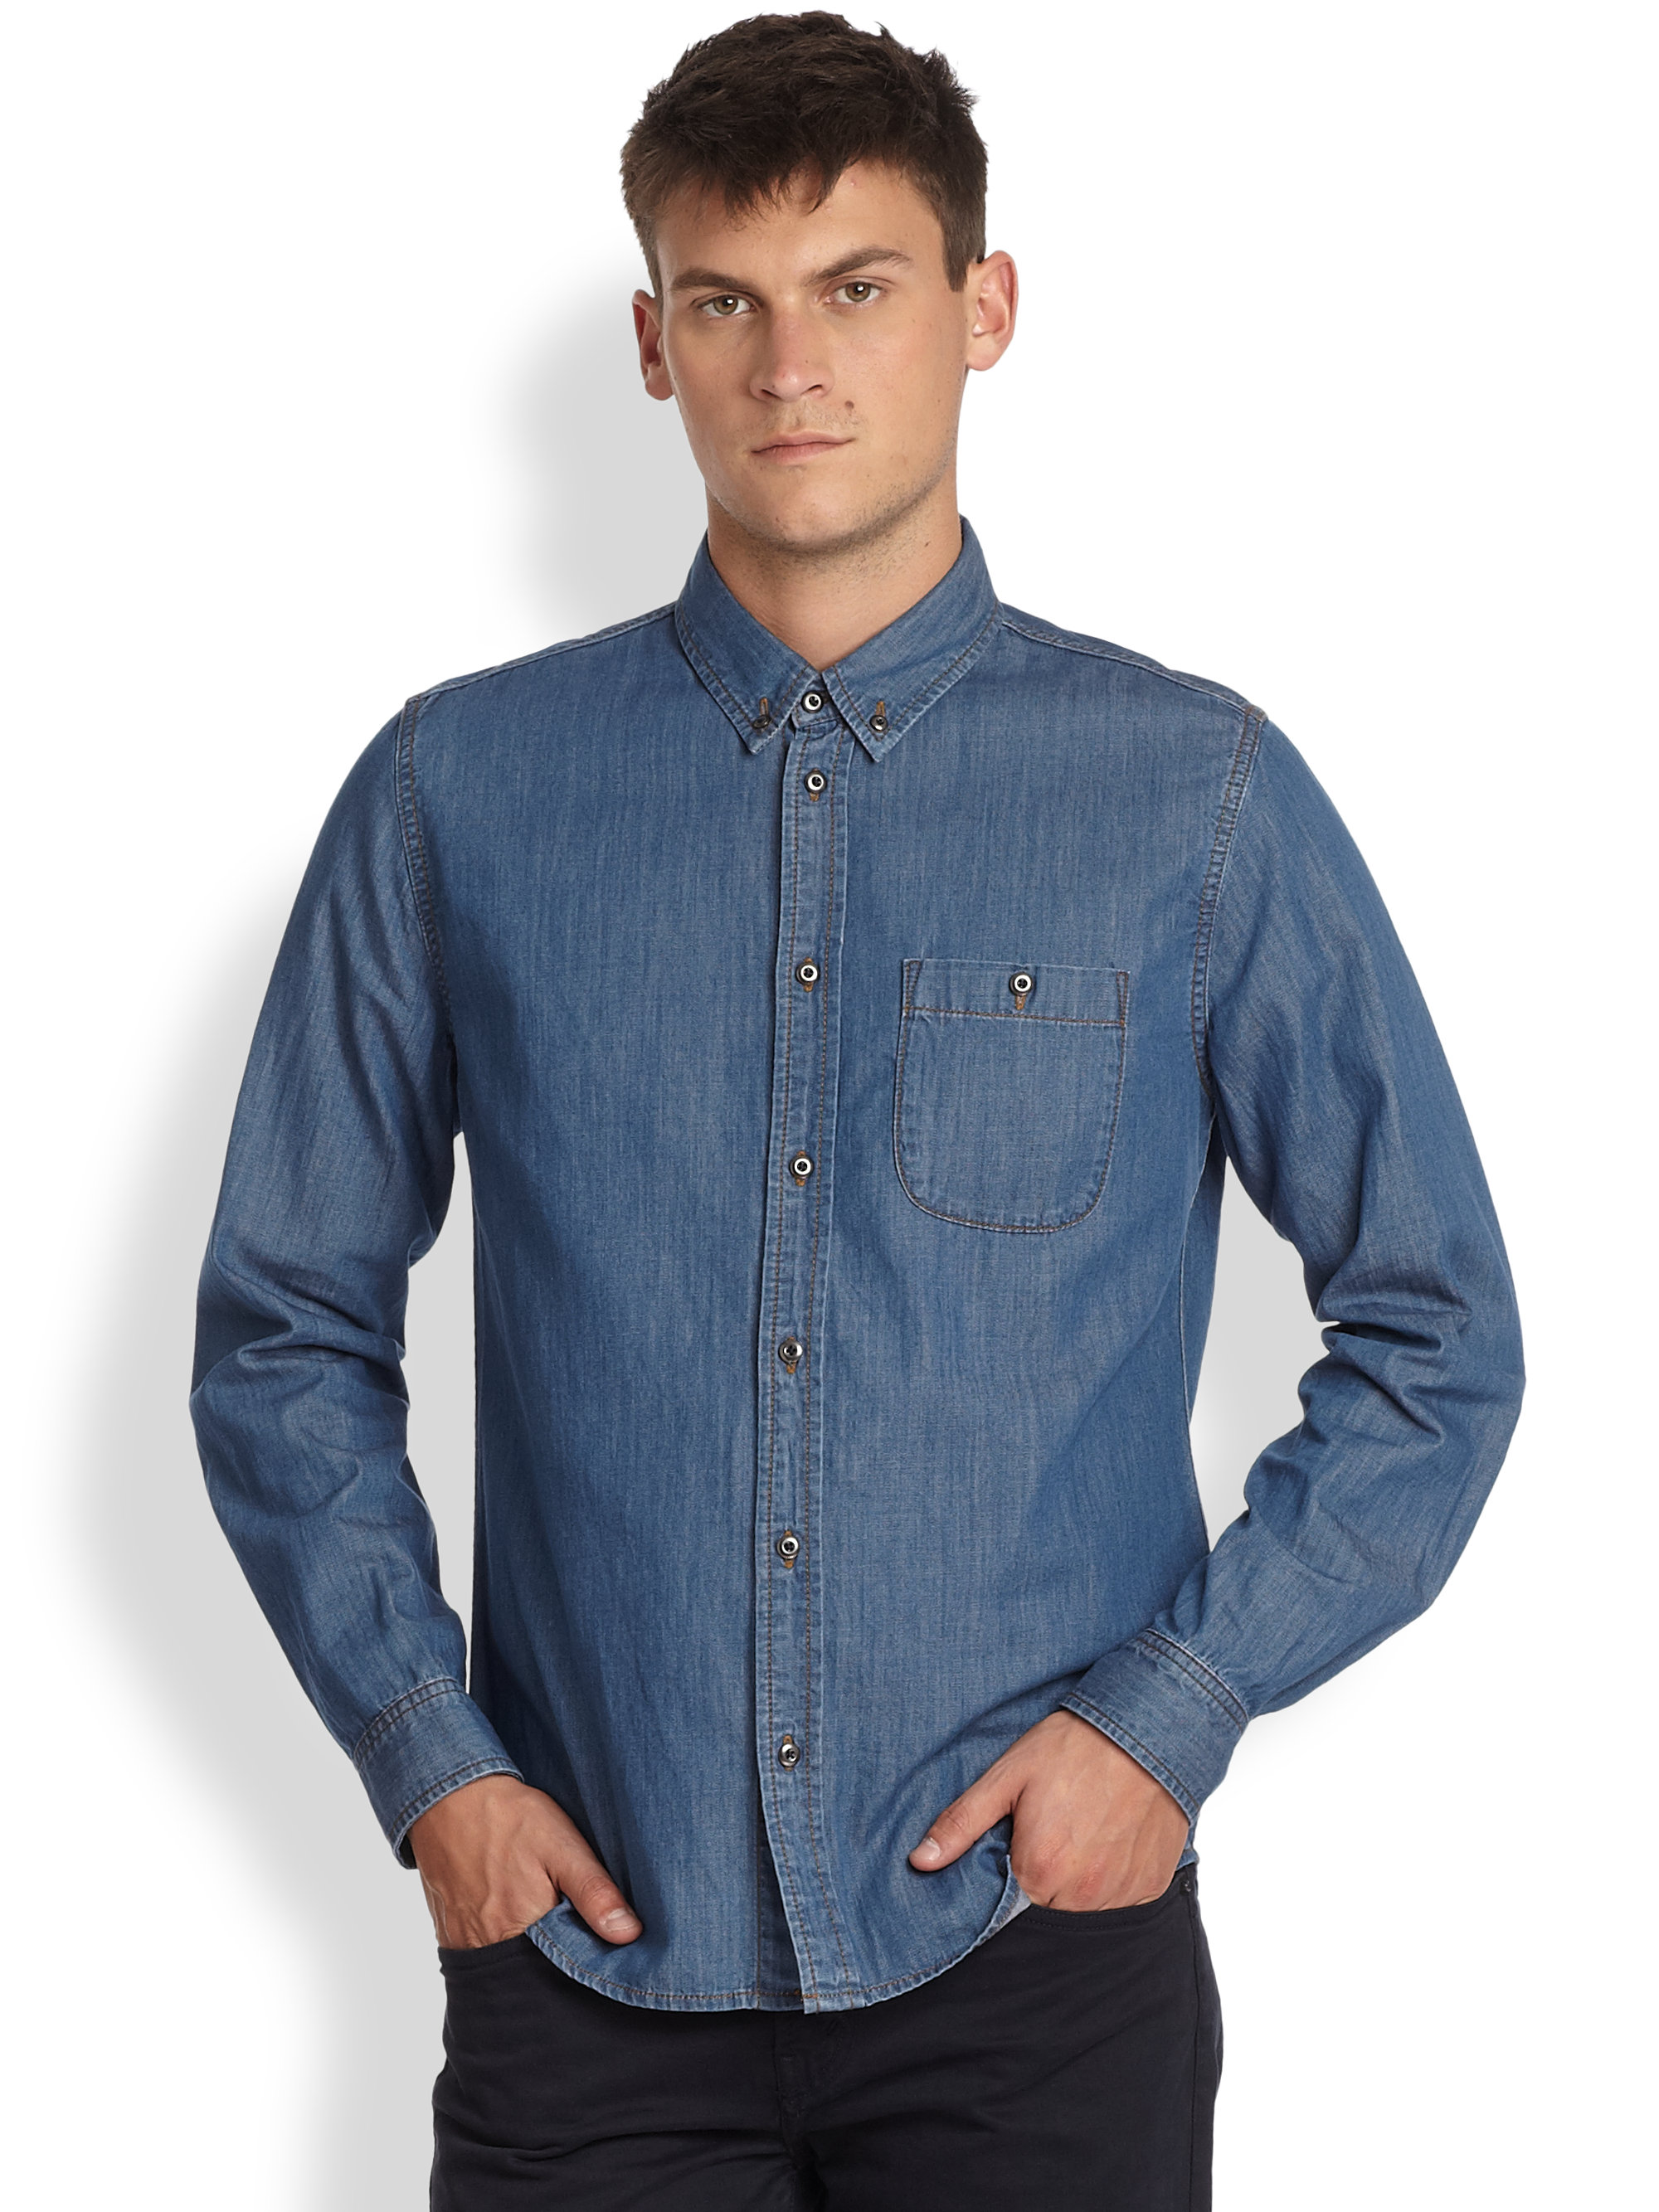 Marc by marc jacobs Denim Button Down Shirt in Blue for Men | Lyst